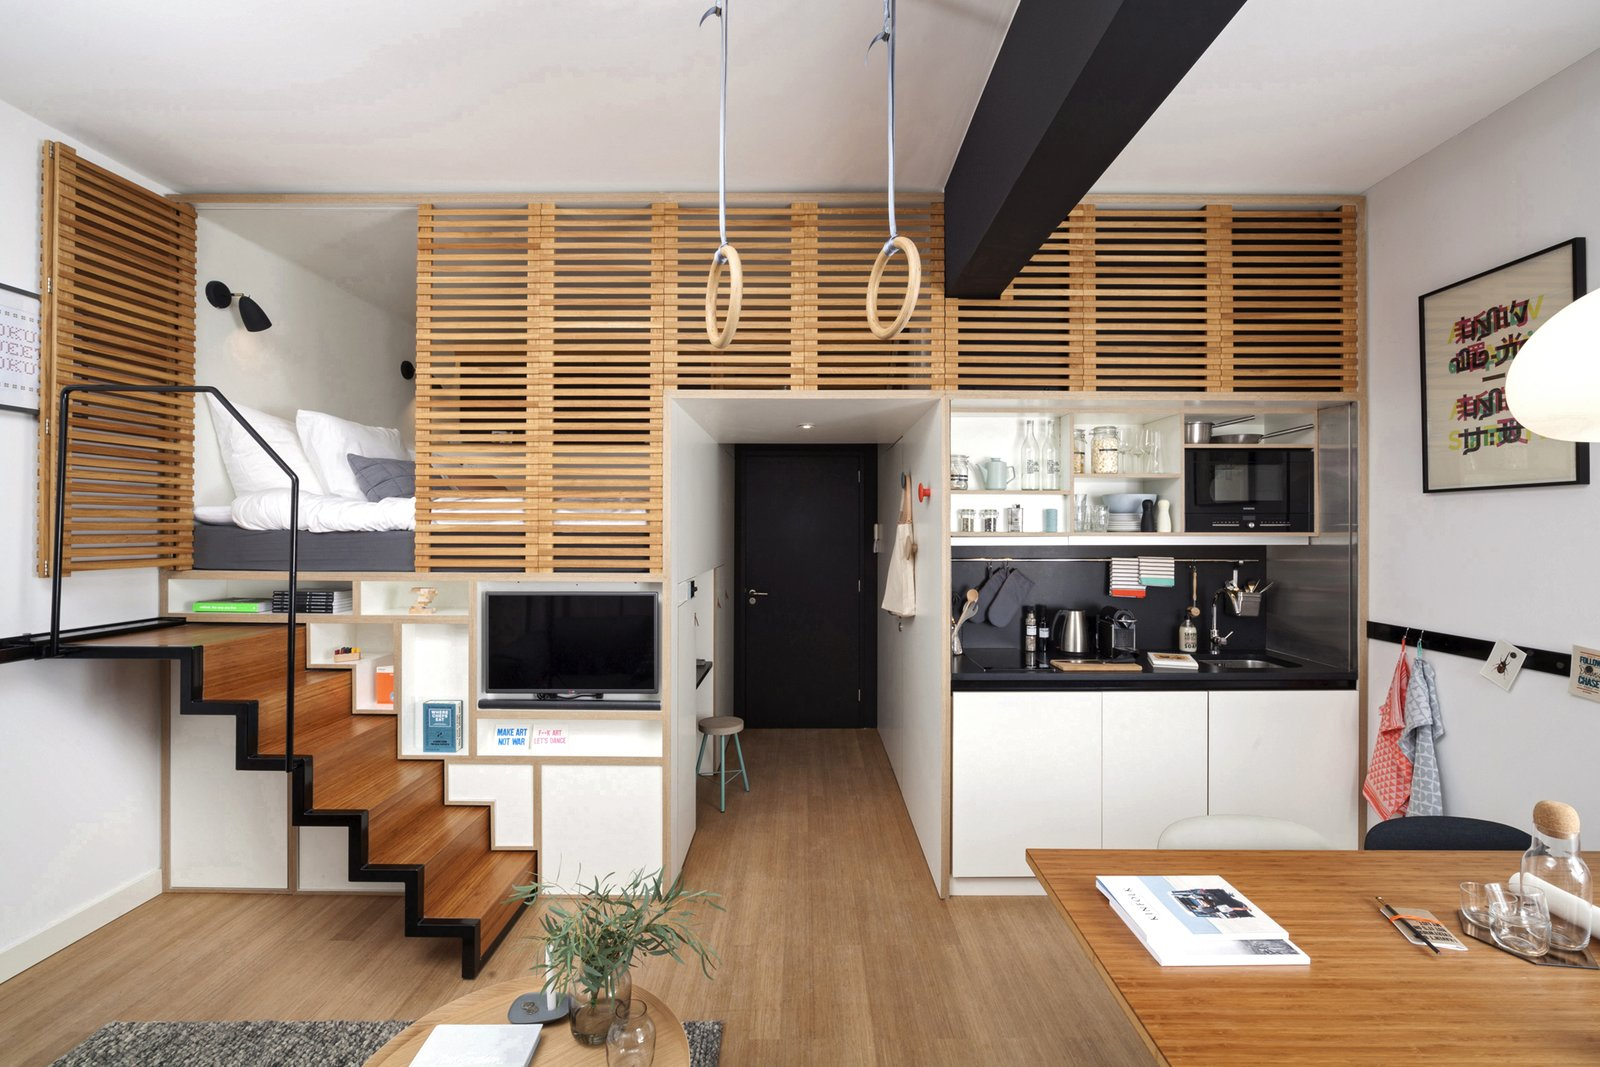 Concrete Amsterdam Zoku Loft p 15  Photo 14 of 15 in Gestalten's New Book Shows How to Transform Small Spaces Into Design Marvels